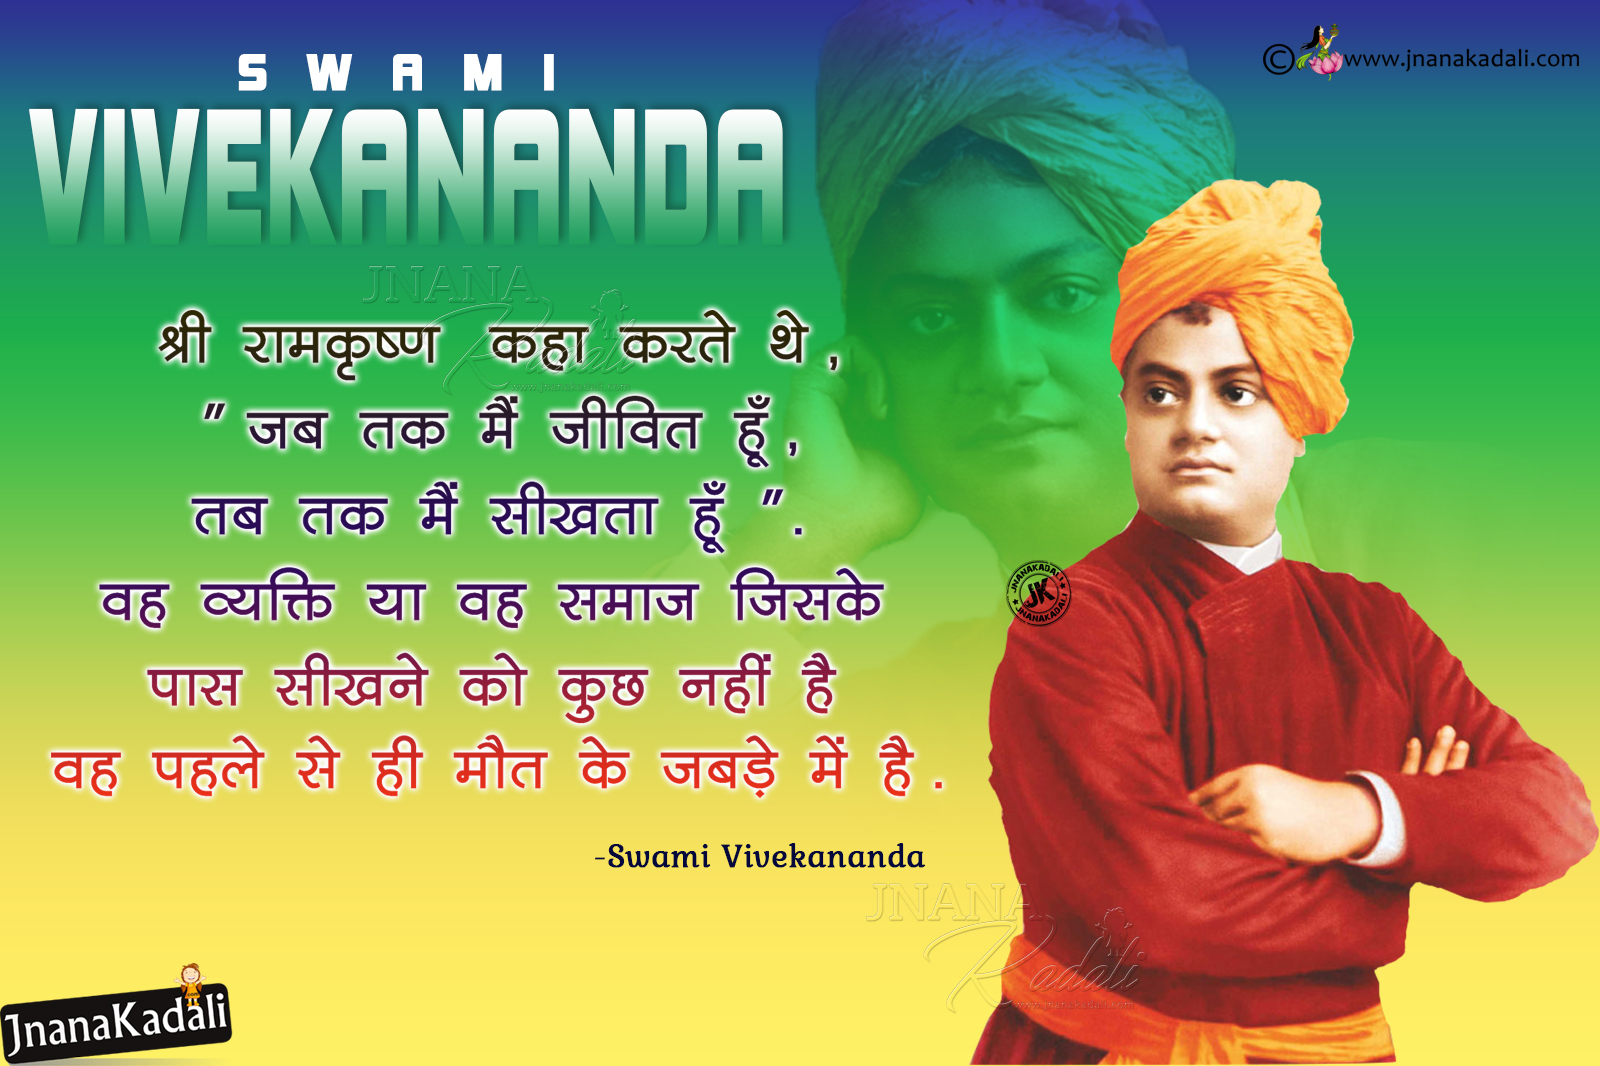 Quotes Vivekananda Hindi Swami Vivekananda Anmol Vachan With Hd Wallpapershindi